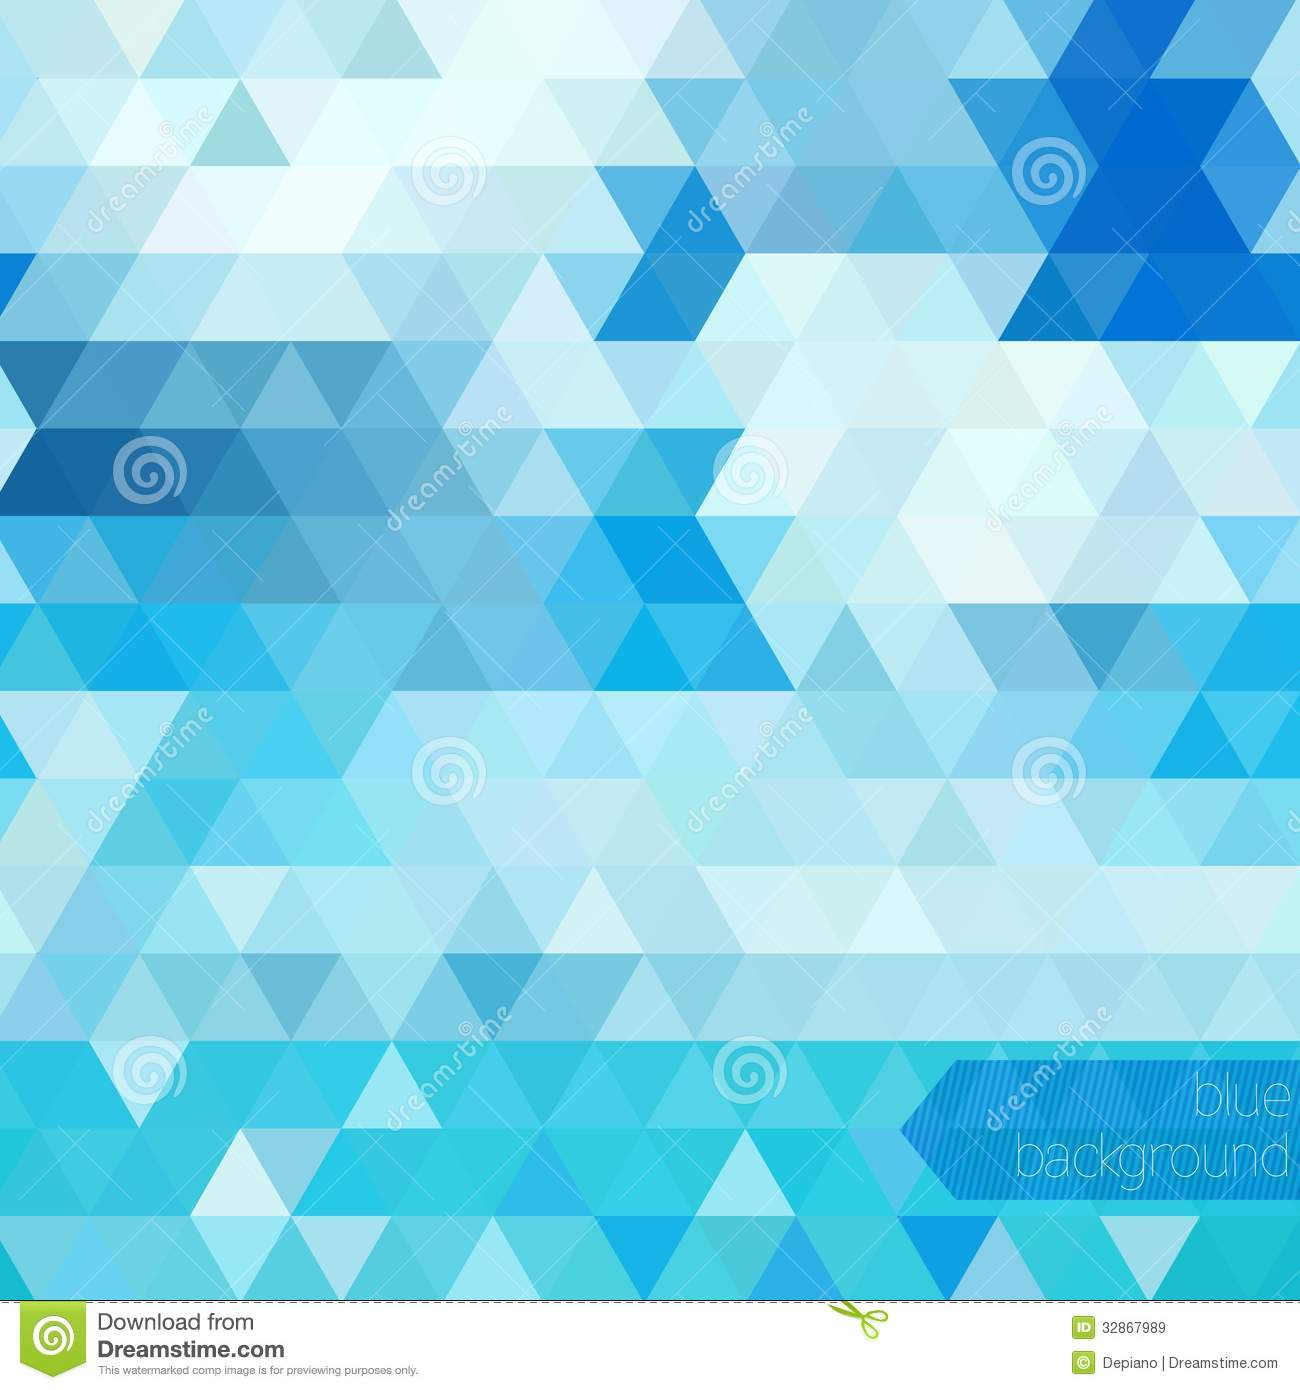 Free Download Wallpaper 3d Graphic Blue Abstract Geometric Background Royalty Free Stock